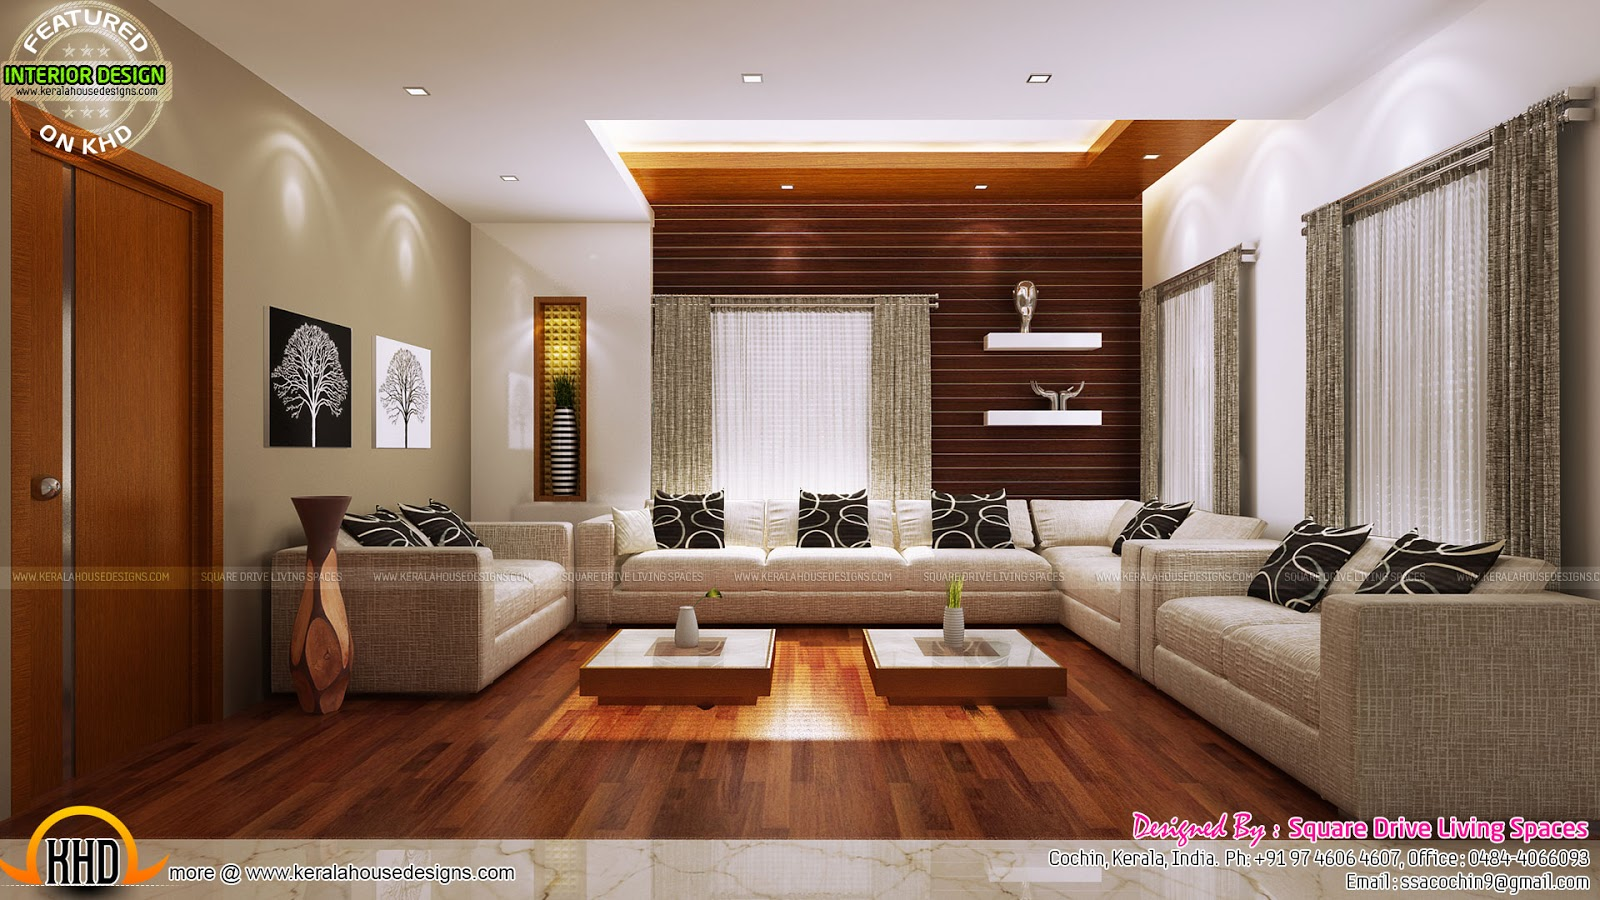 Excellent kerala interior design kerala home design and for Kerala home interior designs photos